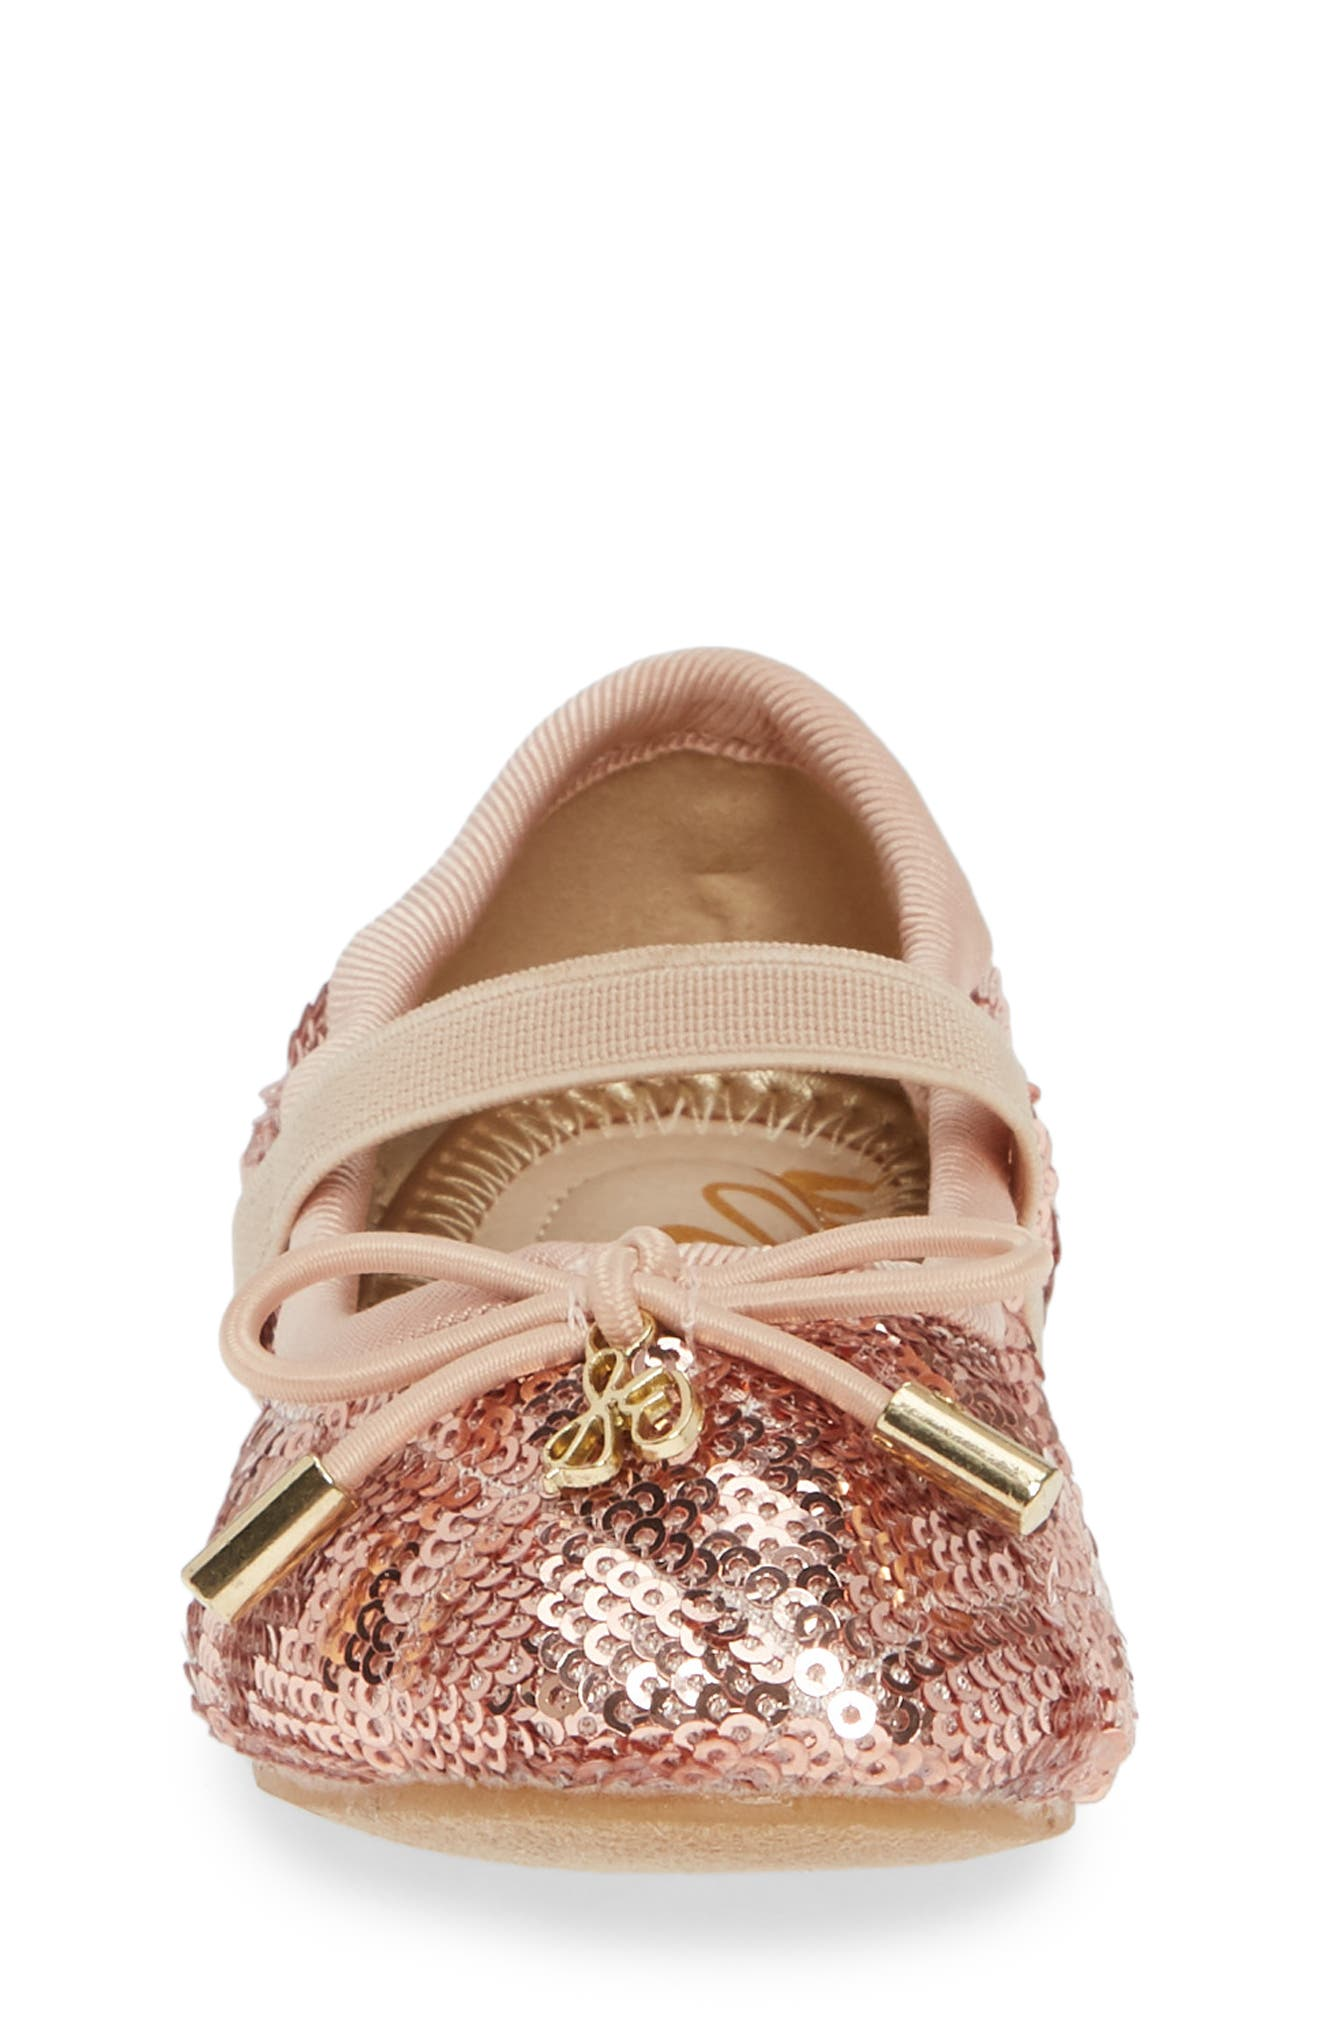 'Felicia' Mary Jane Ballet Flat,                             Alternate thumbnail 4, color,                             ROSE GOLD